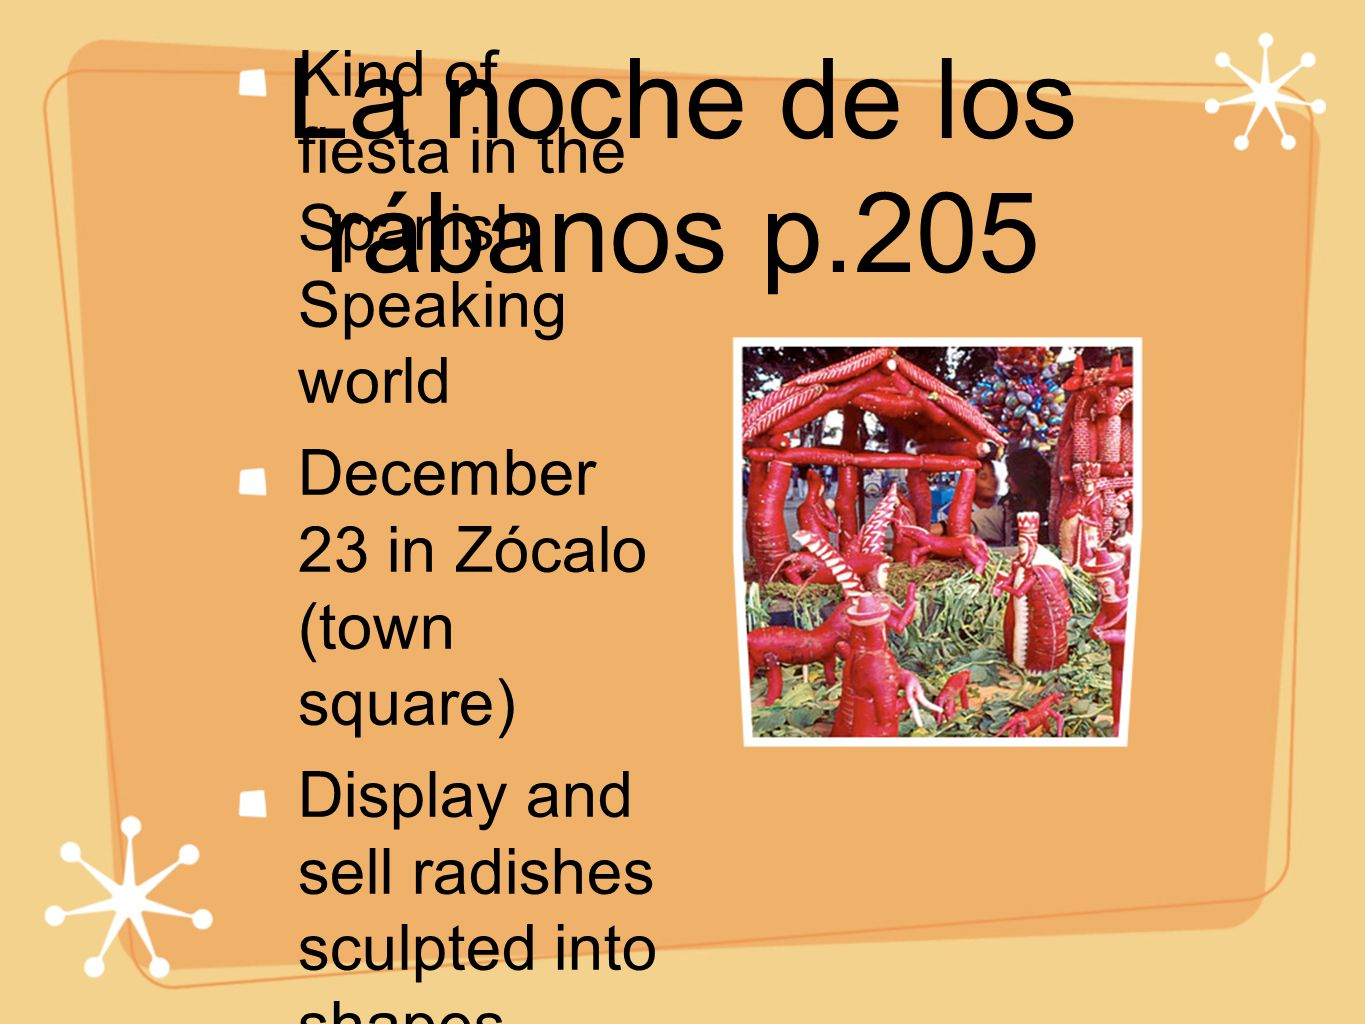 La noche de los rábanos p.205 Kind of fiesta in the Spanish Speaking world December 23 in Zócalo (town square) Display and sell radishes sculpted into shapes.